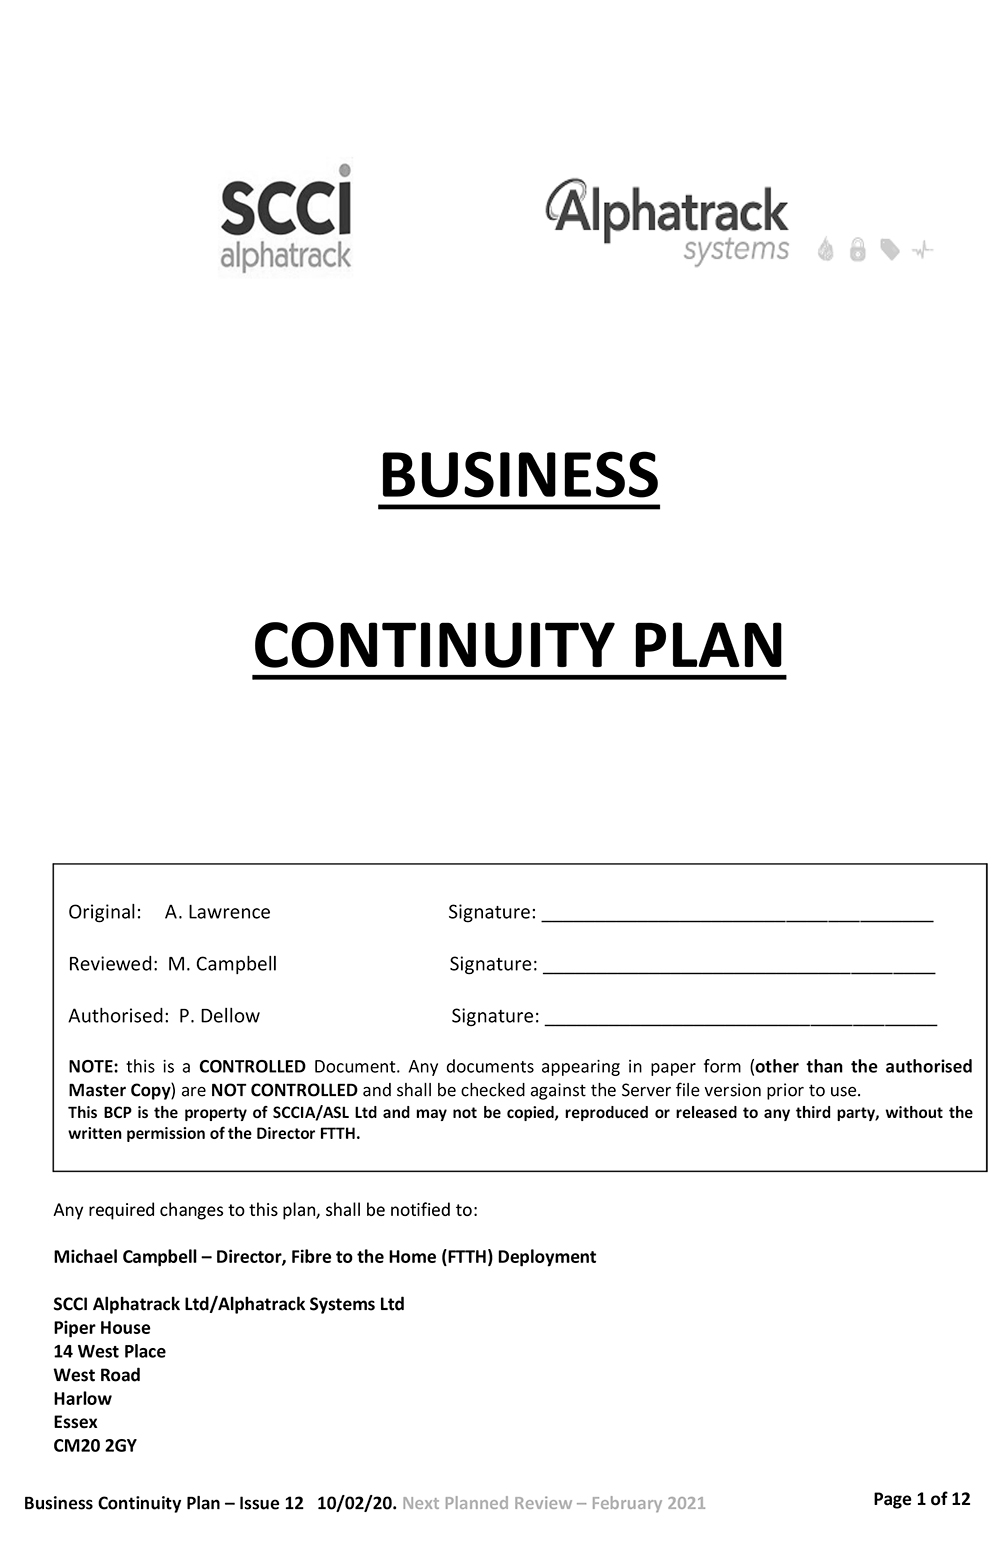 Alphatrack Systems Ltd Business Continuity Plan 2020